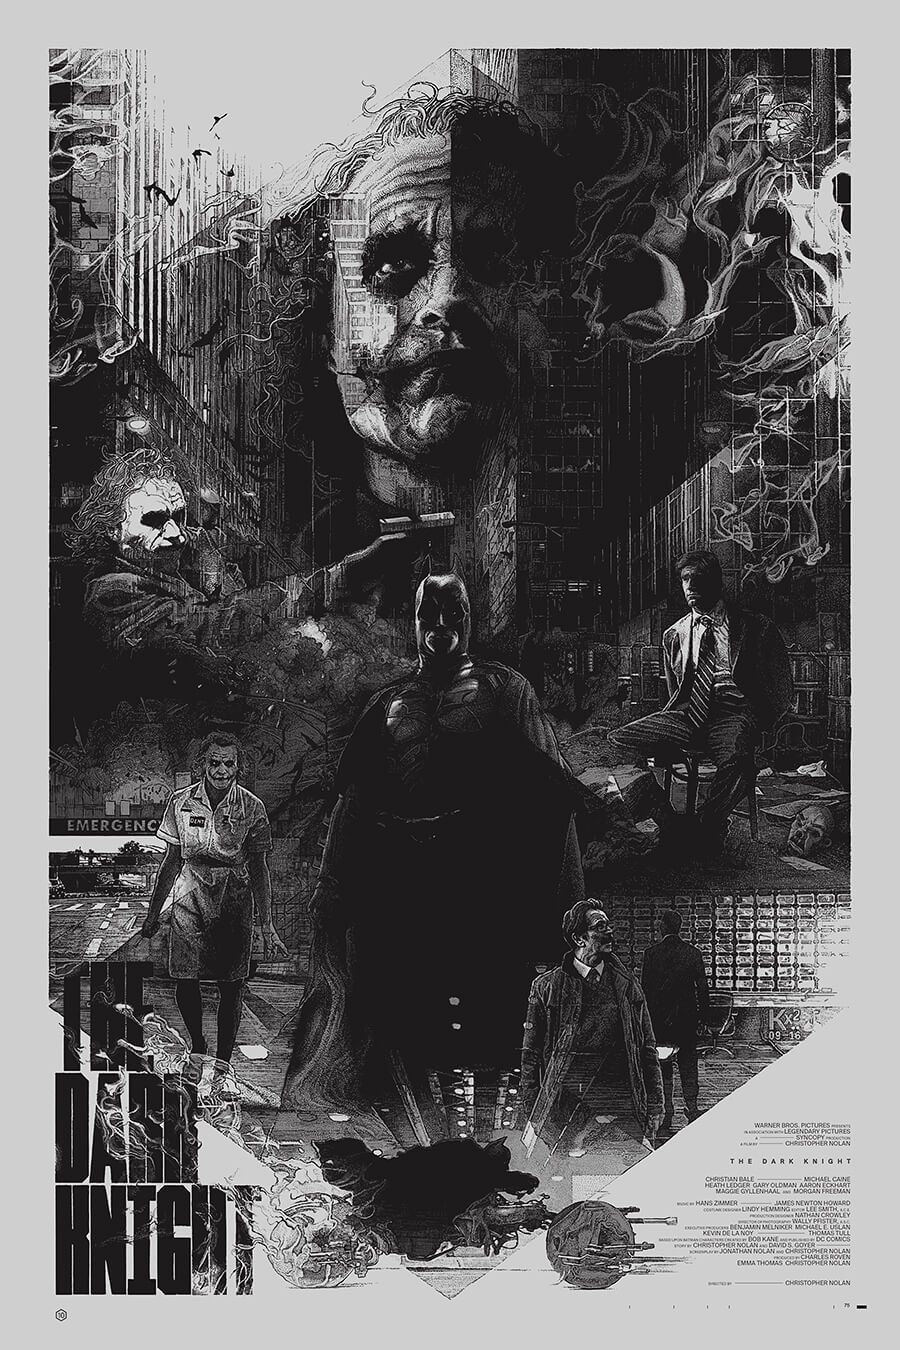 Stunning Poster Art for Christopher Nolan's DARK KNIGHT